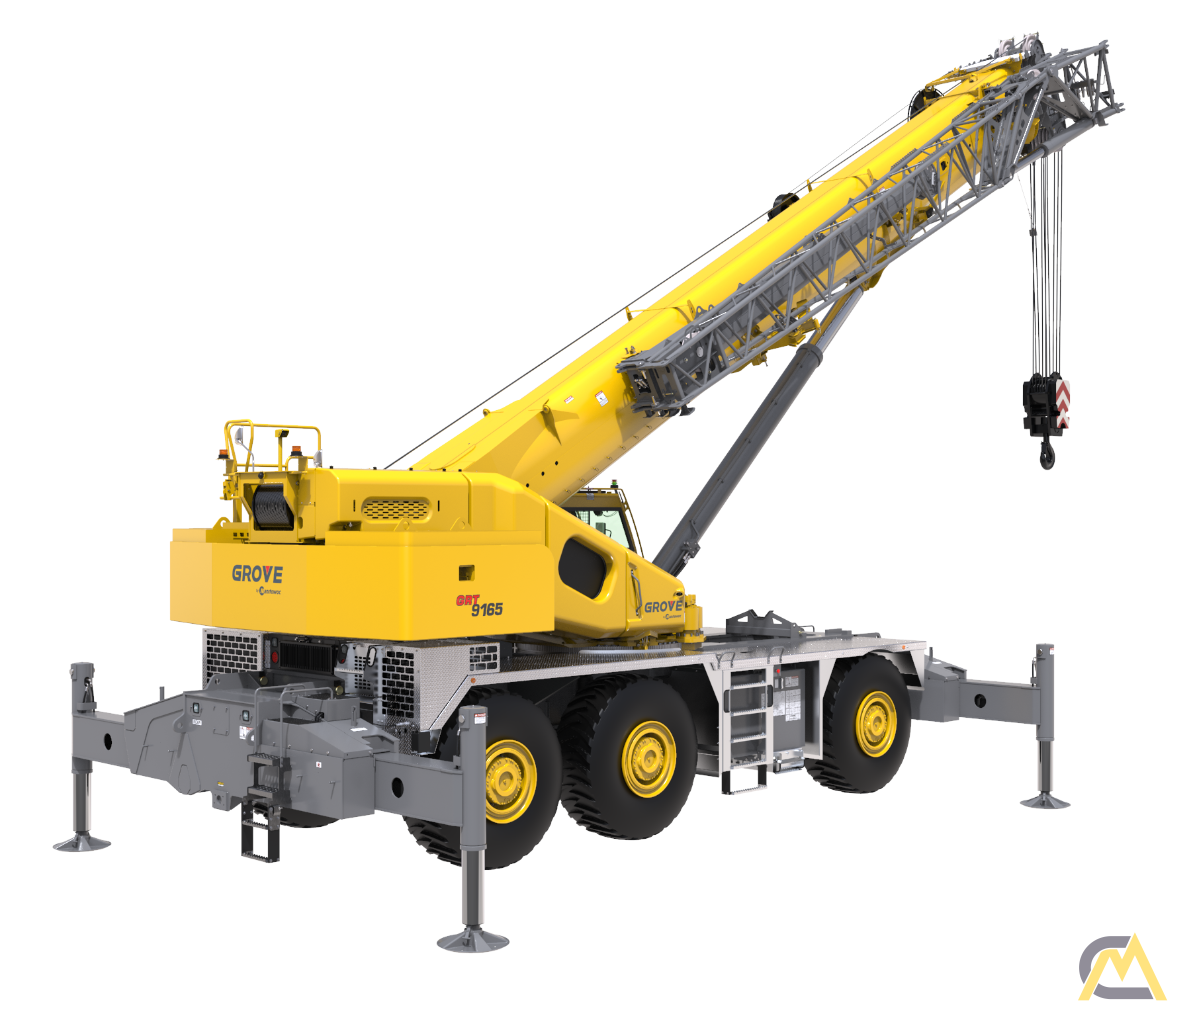 Grove GRT9165 165-Ton Rough Terrain Crane 2